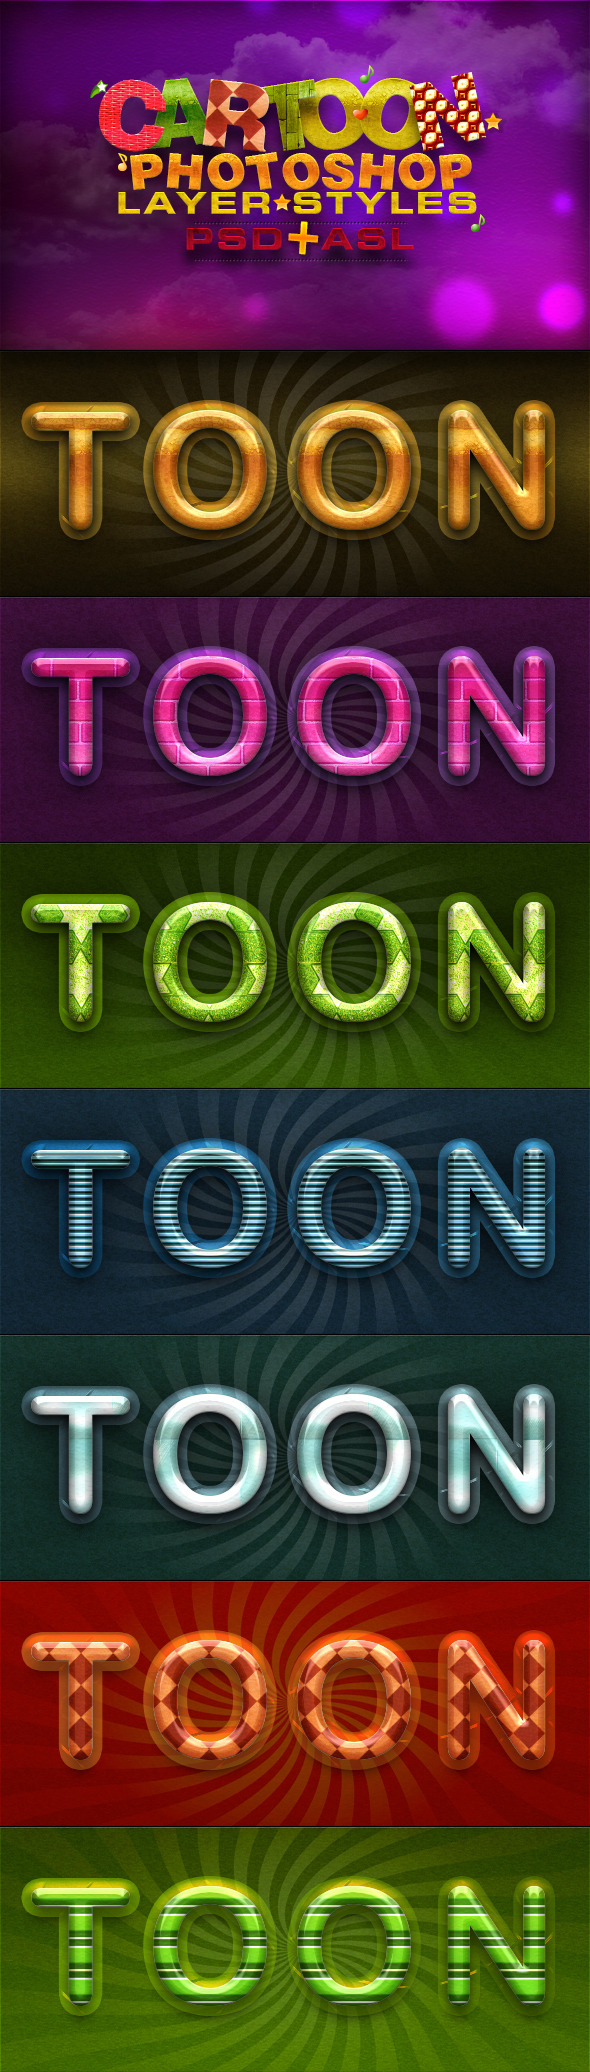 Cartoon Layer Styles - Text Effects Styles